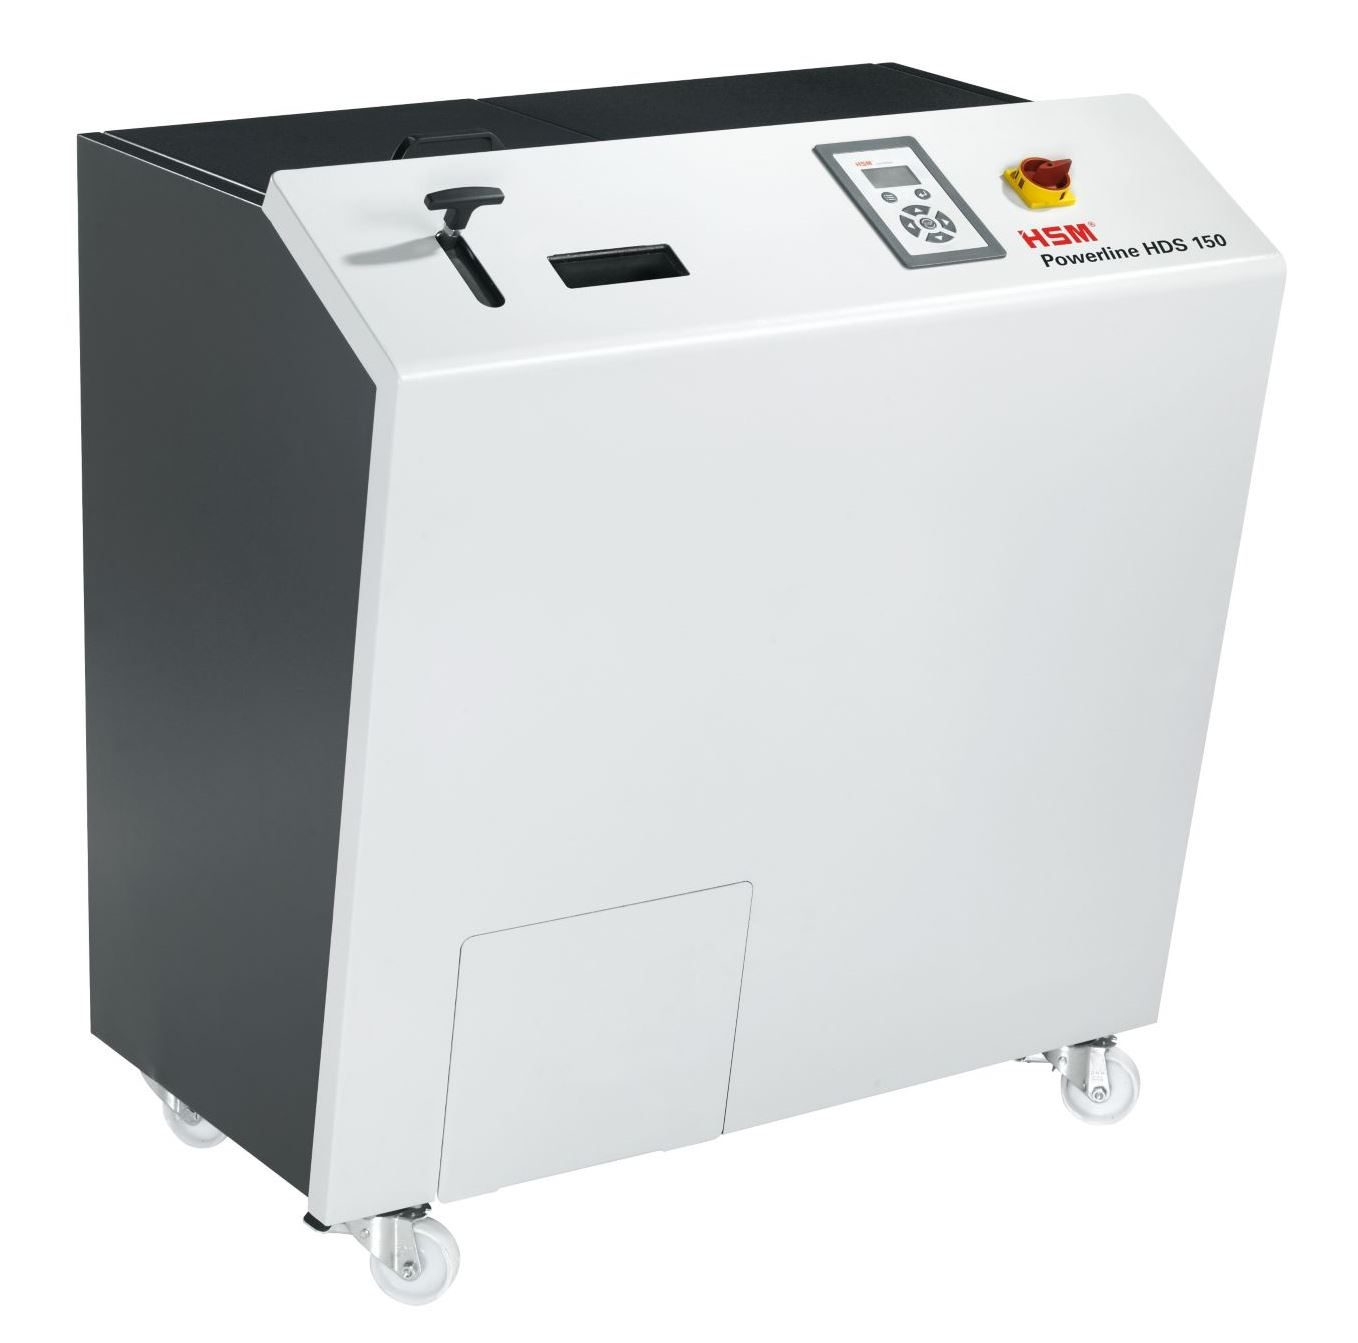 Shredder HDS-150